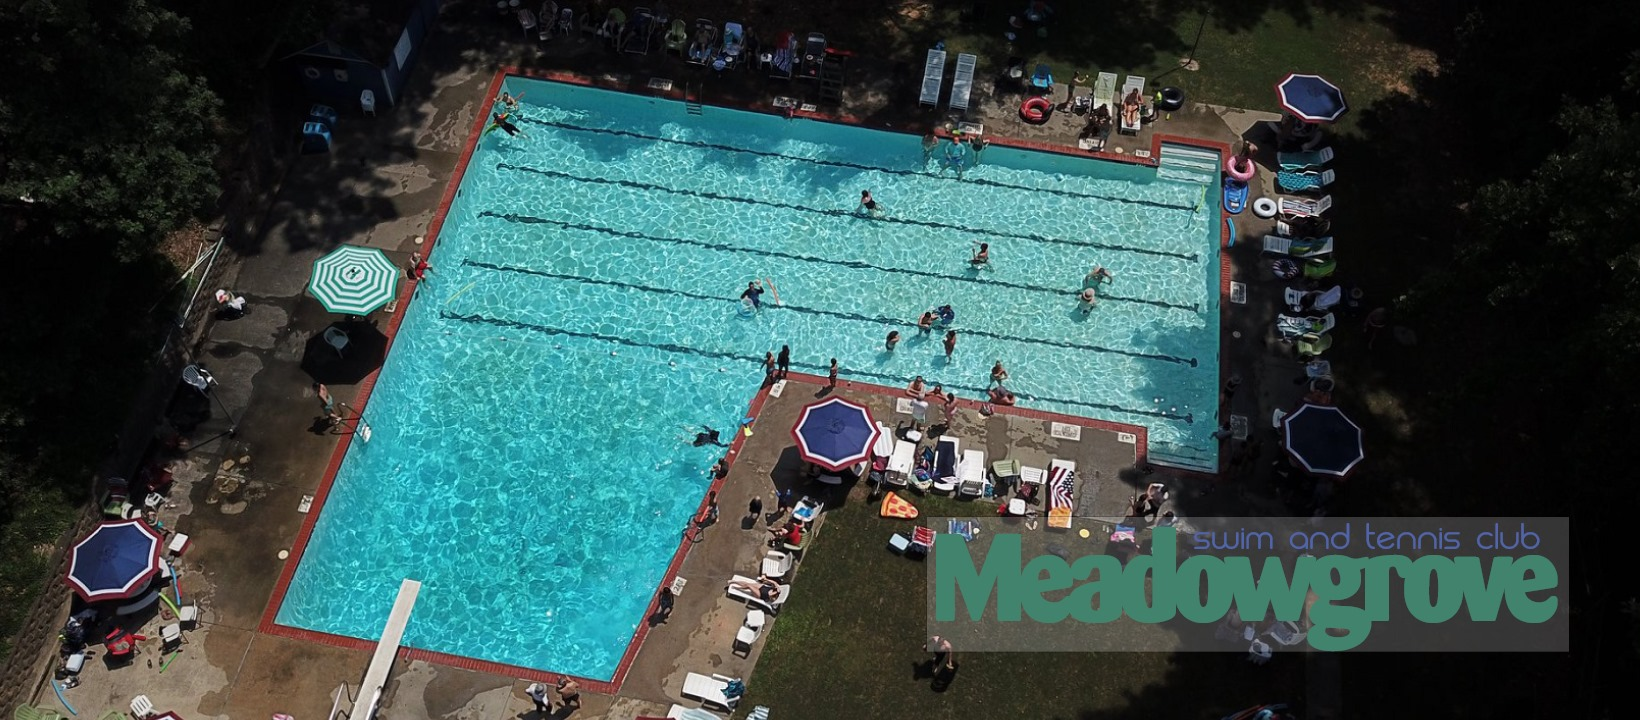 Meadowgrove Swim & Tennis Club - Pool